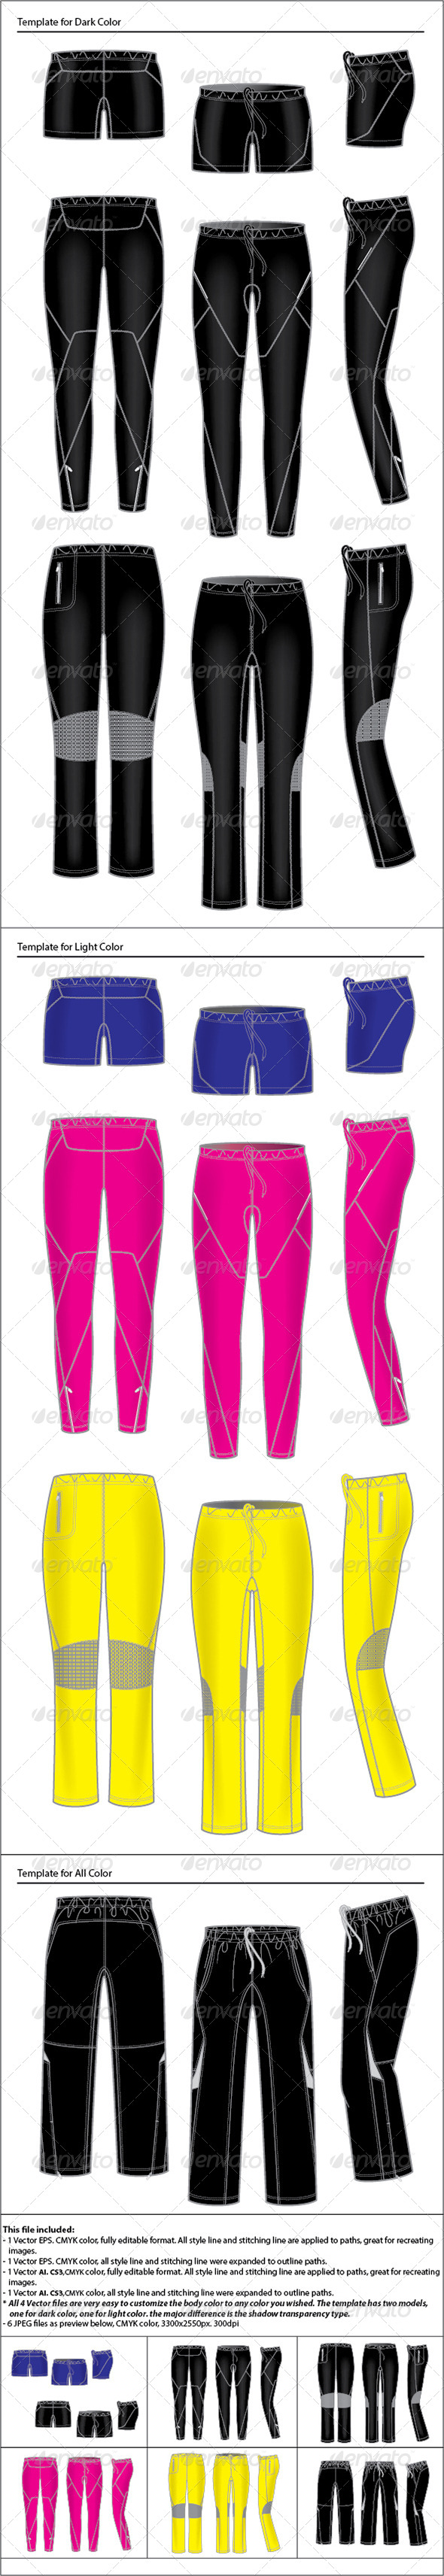 Womens Active Wear Template Pants - Conceptual Vectors